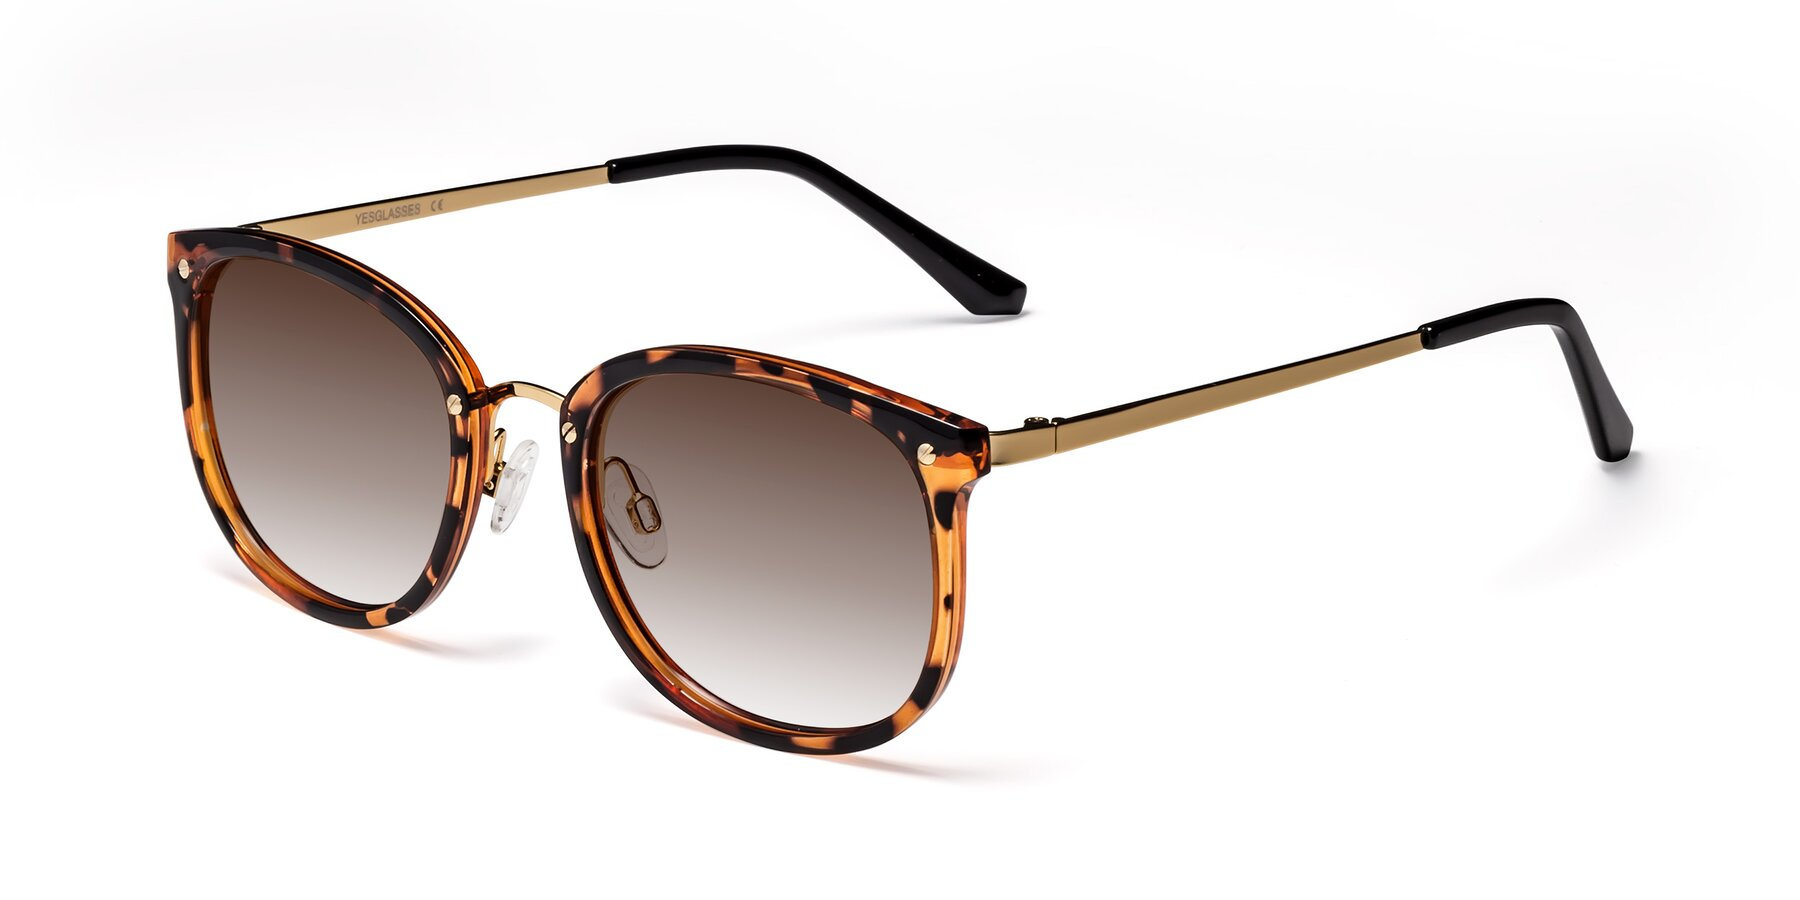 Angle of Timeless in Tortoise-Golden with Brown Gradient Lenses